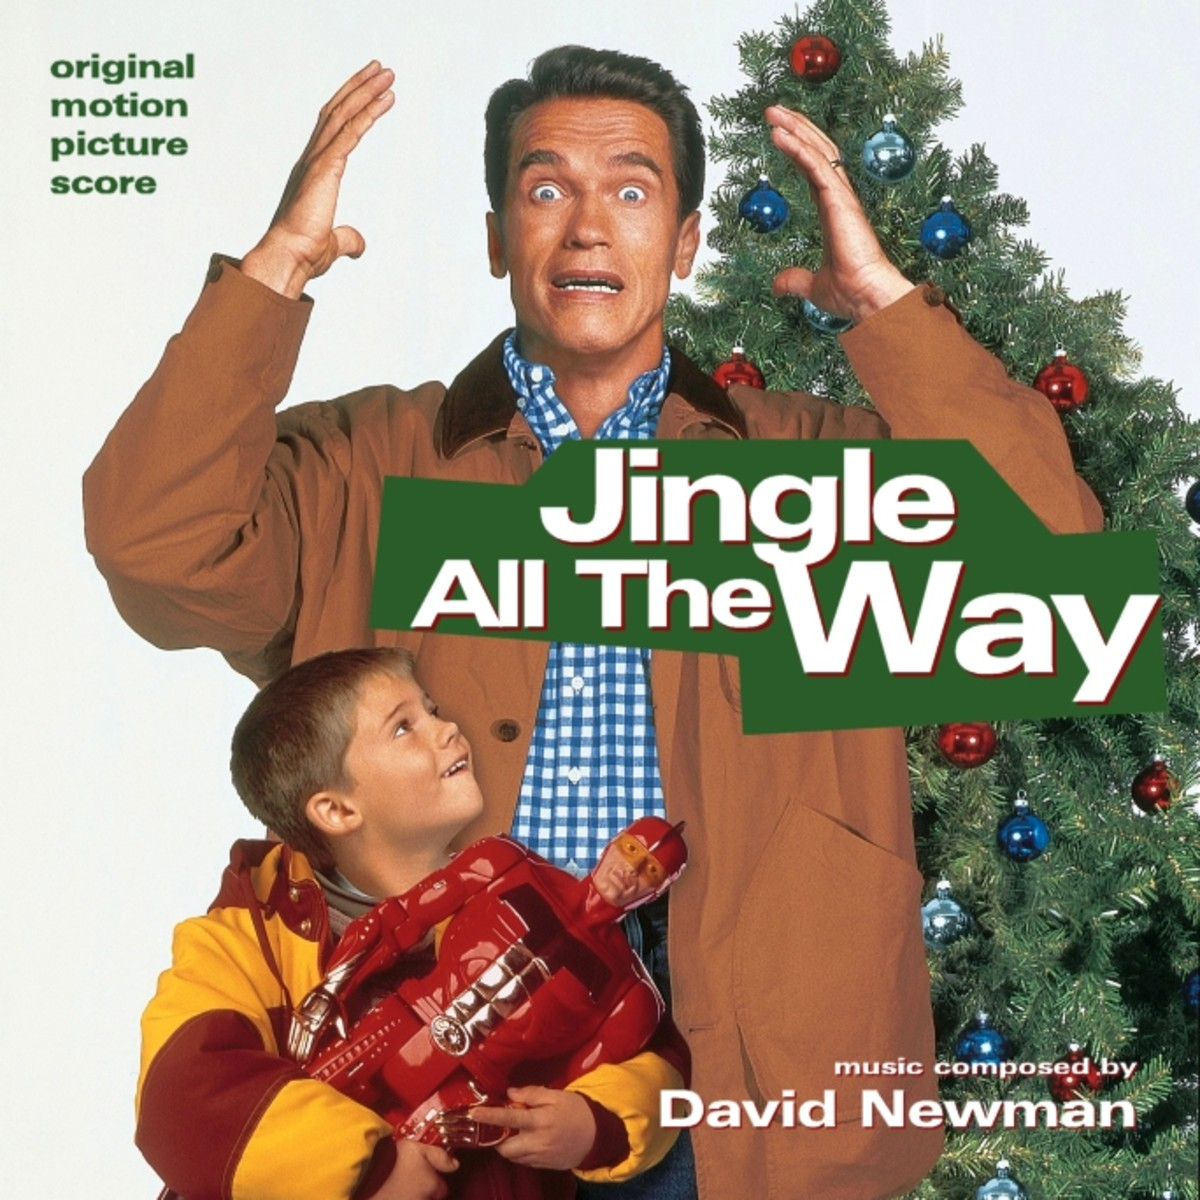 Jingle All The Way (1996); Starring: Arnold Schwarzenegger, Sinbad, Phil Hartman, & Rita Wilson